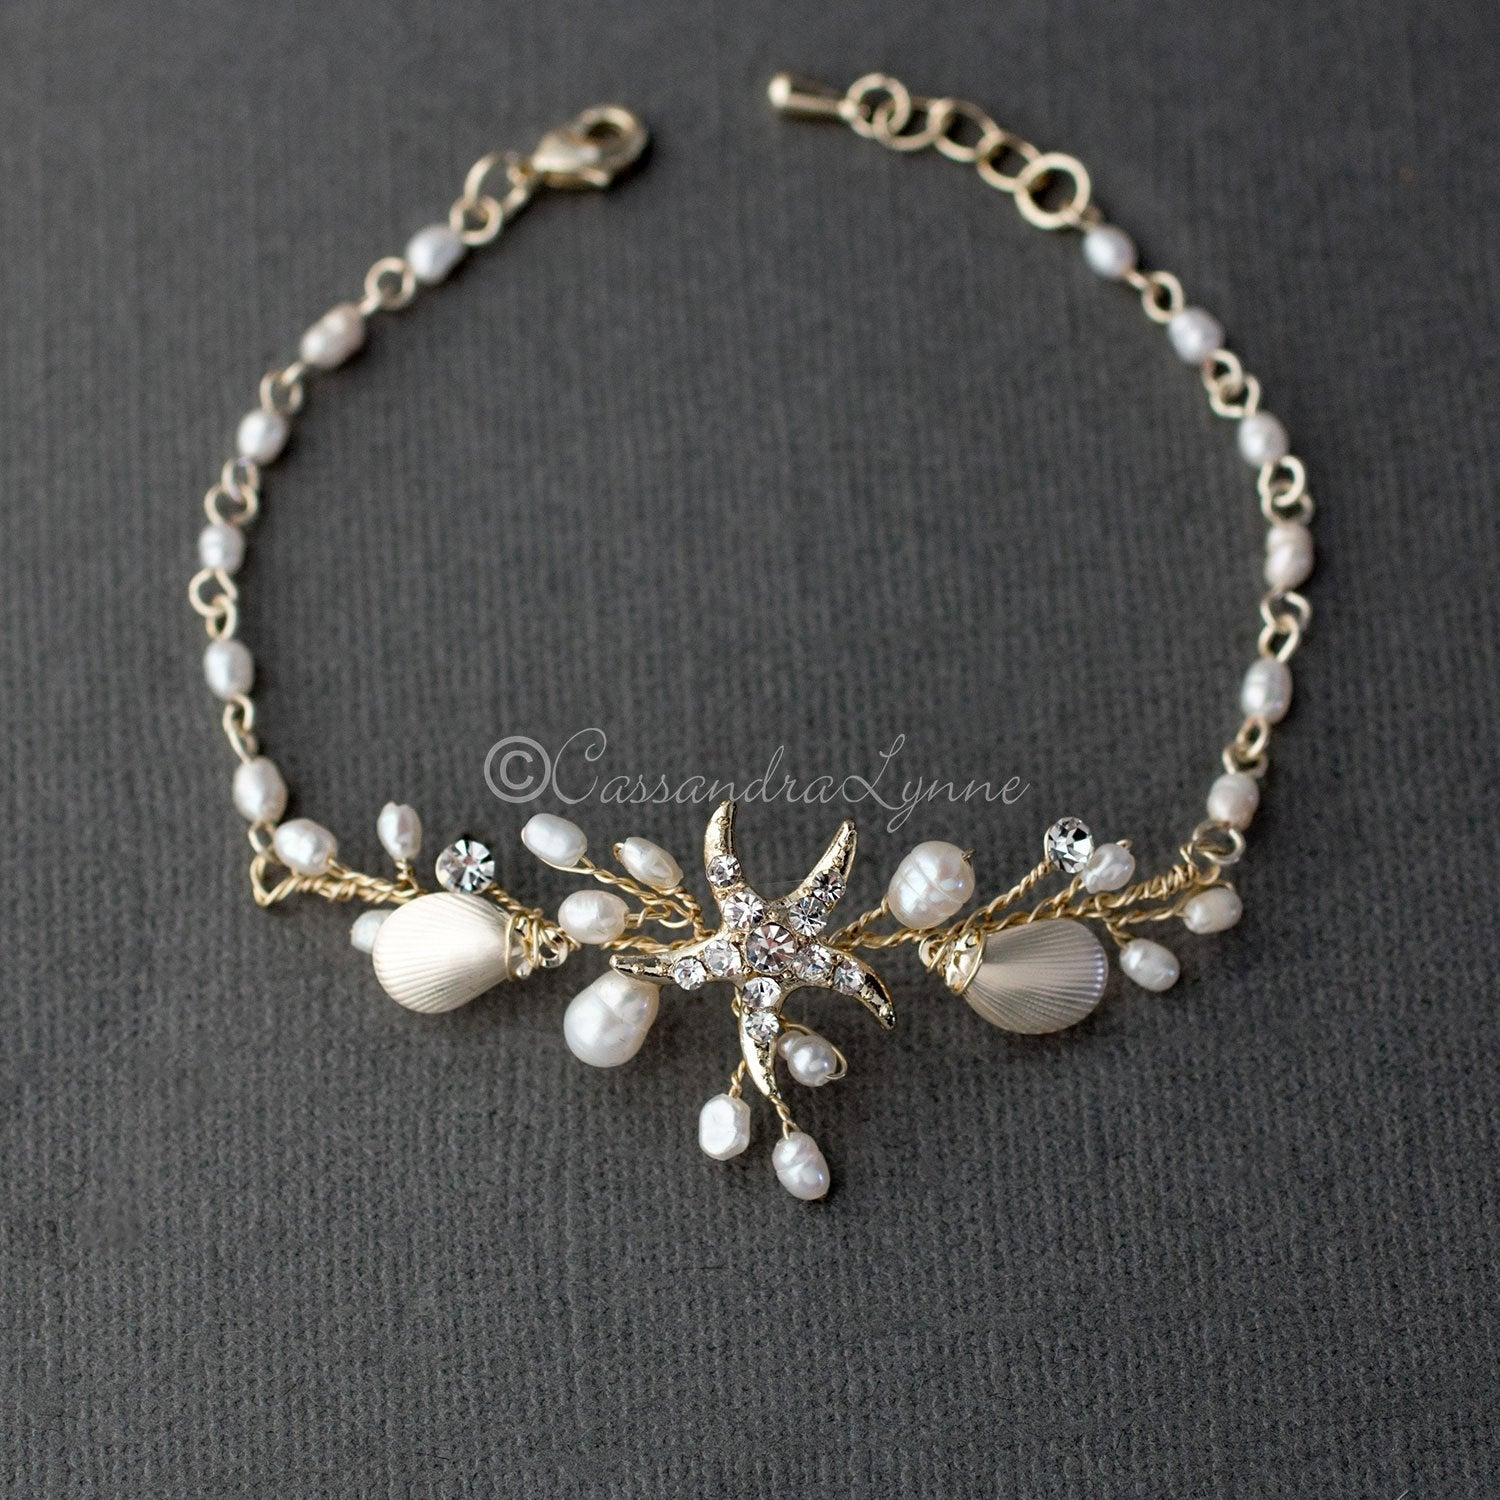 Gold Beach Wedding Bracelet with Starfish